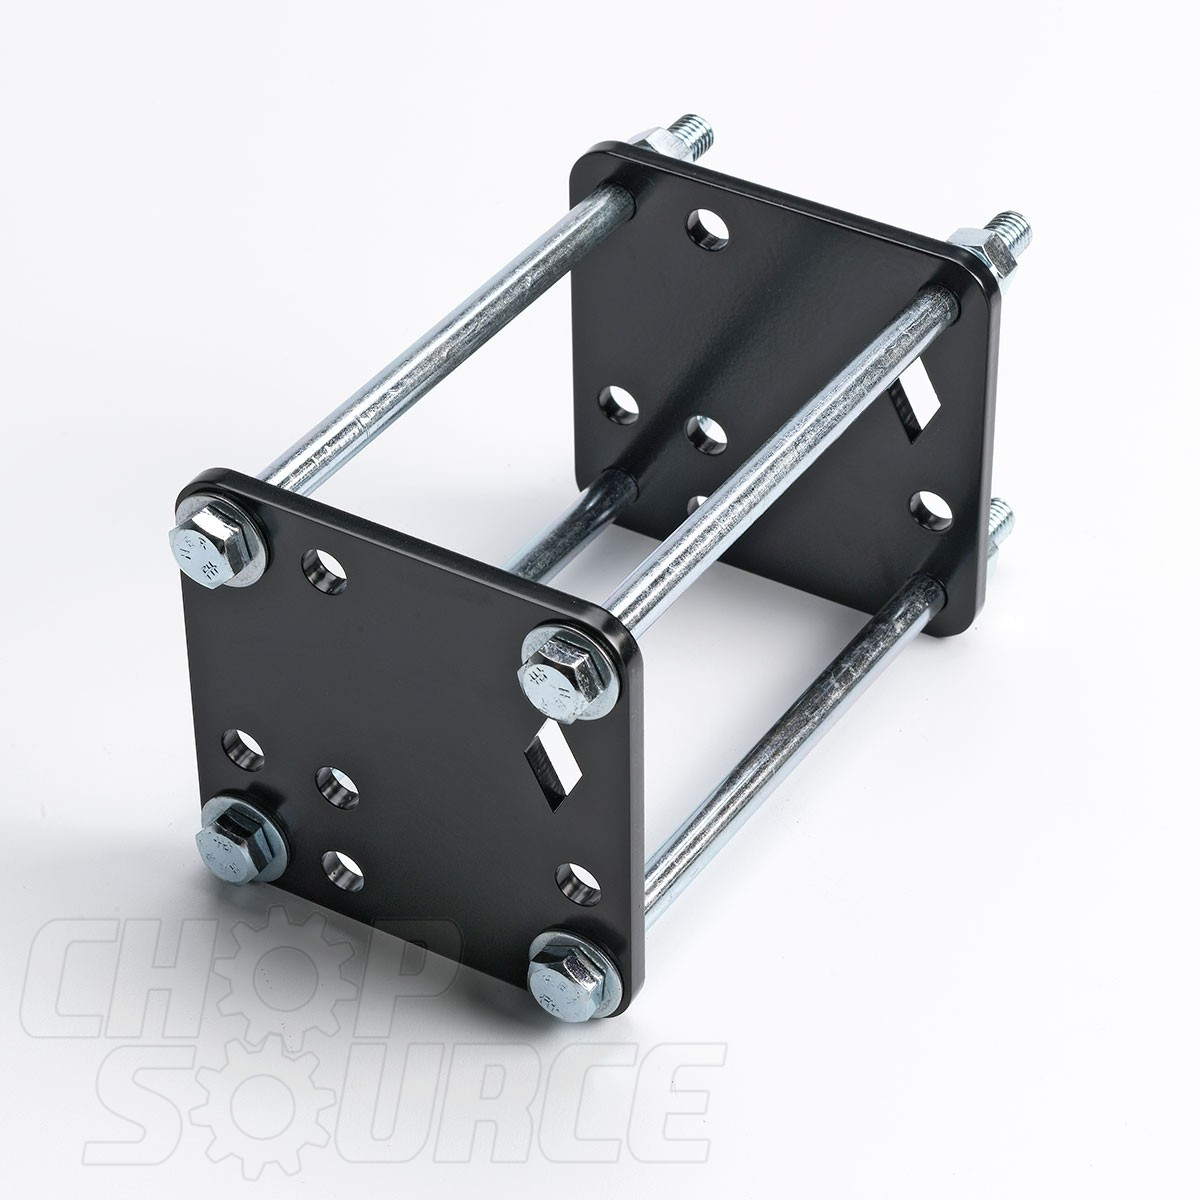 Chop Source Motorcycle Frame Jig Base Clamp Fixture